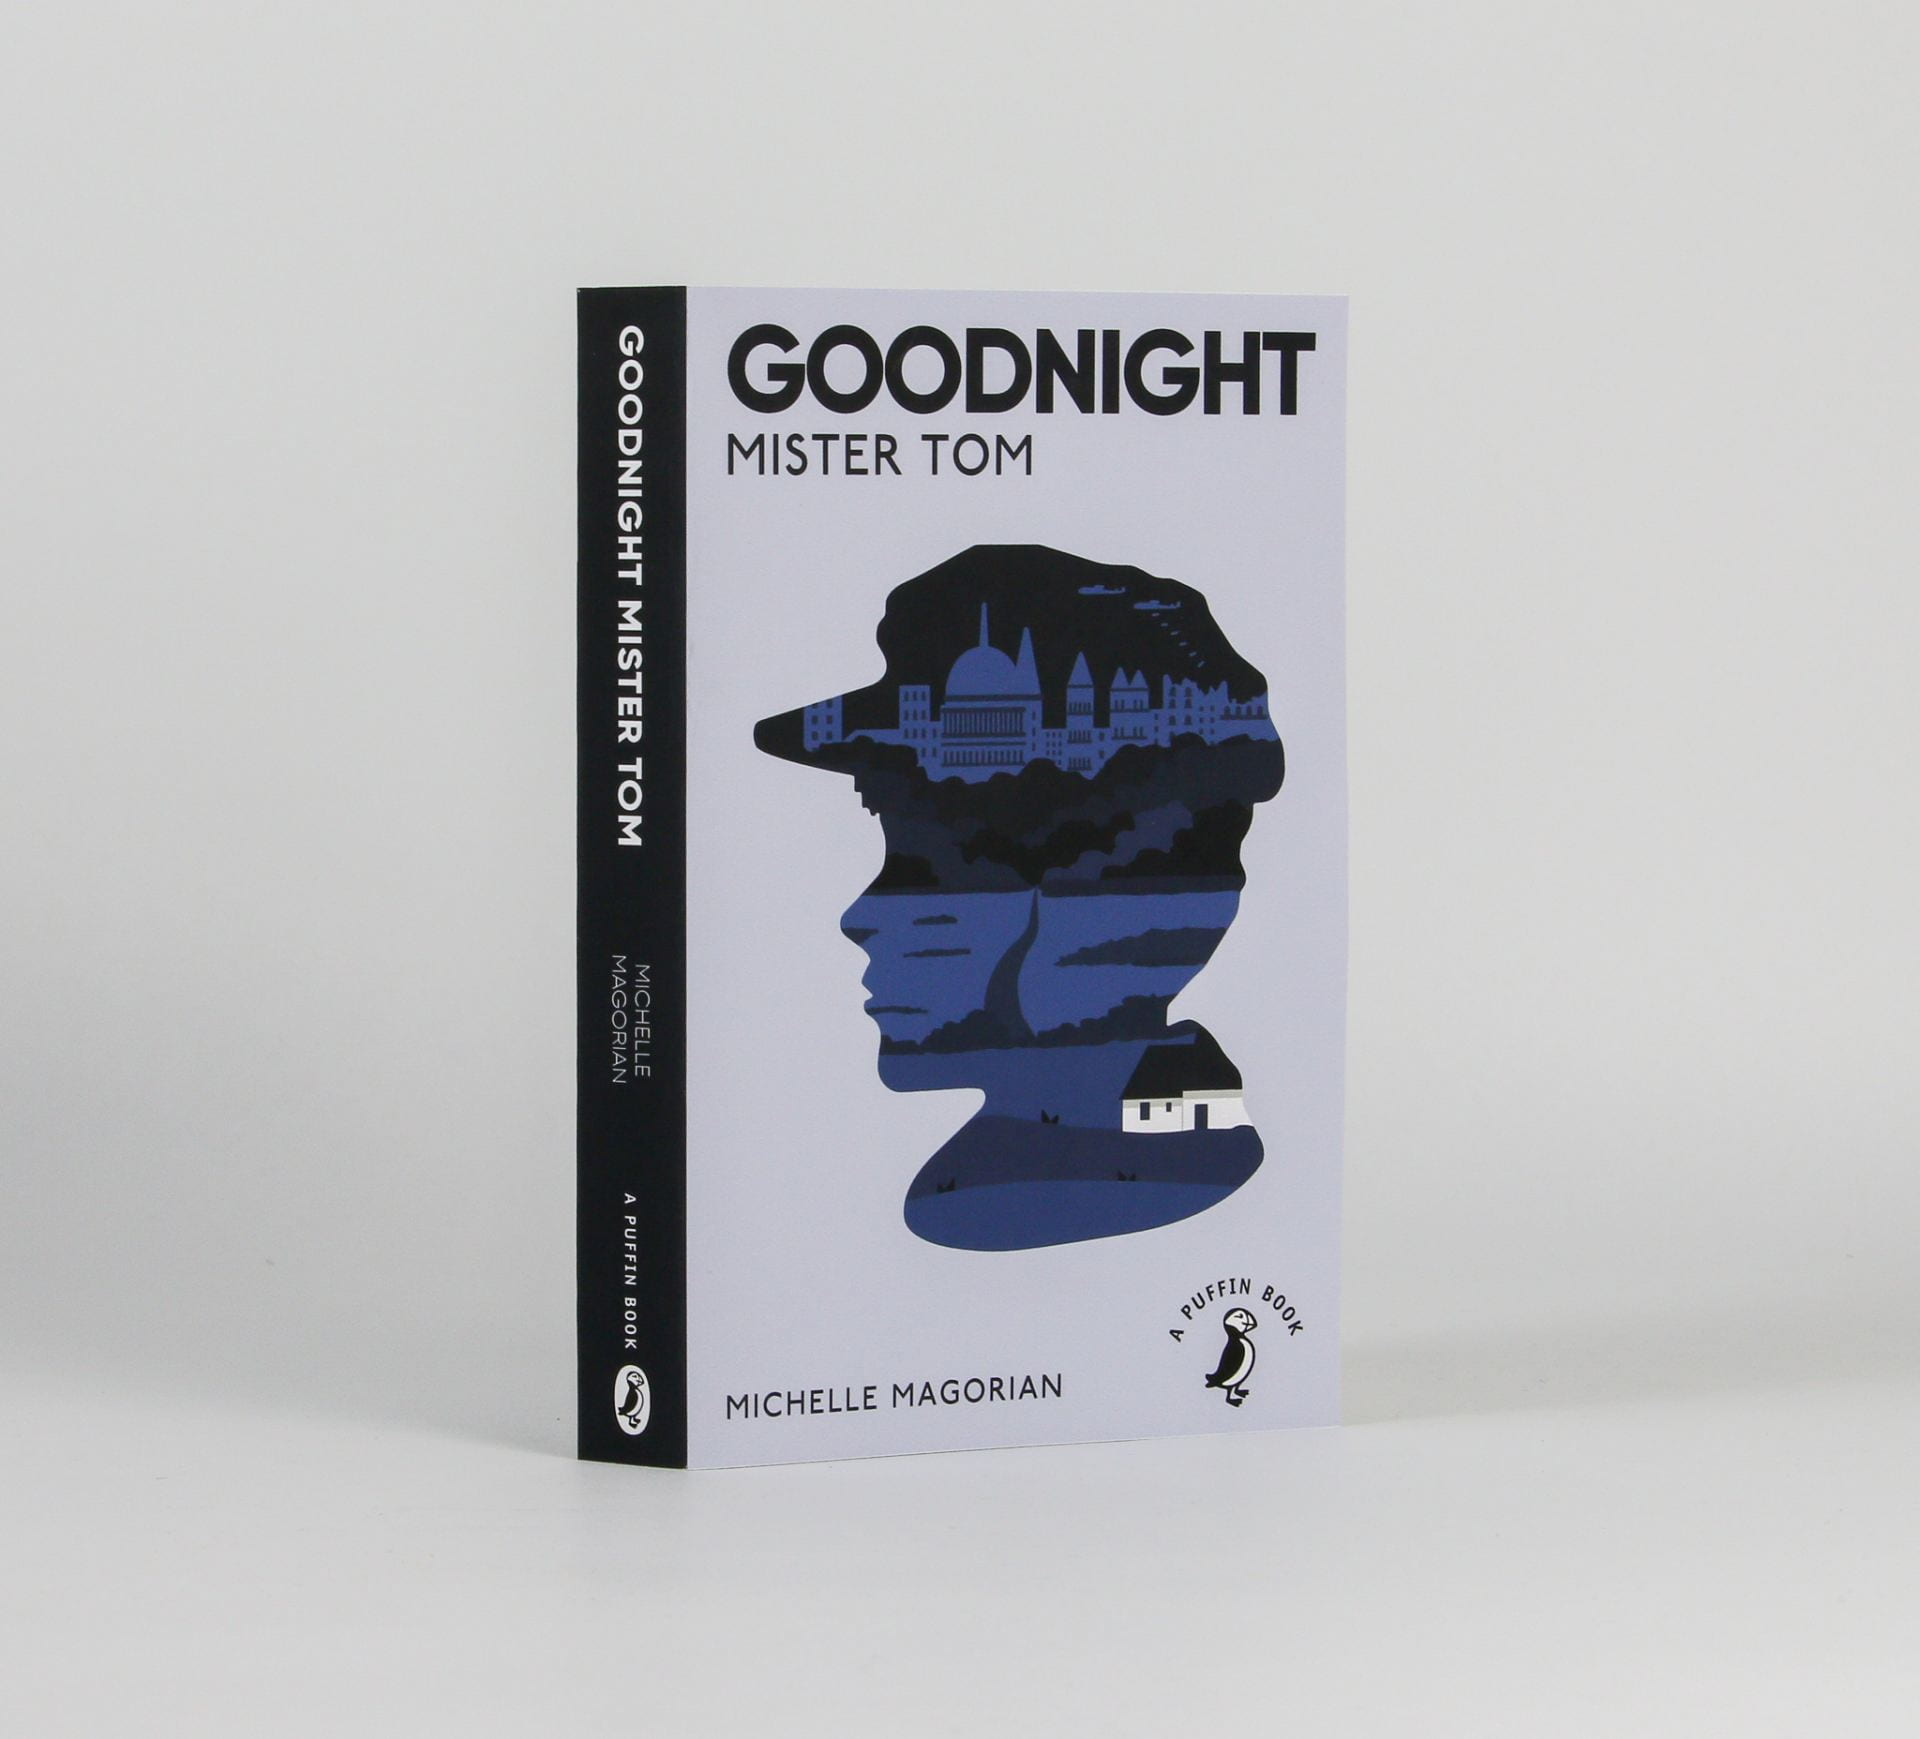 Book cover reading 'Goodnight mister tom' with a silhouette of a boys head with the city inside